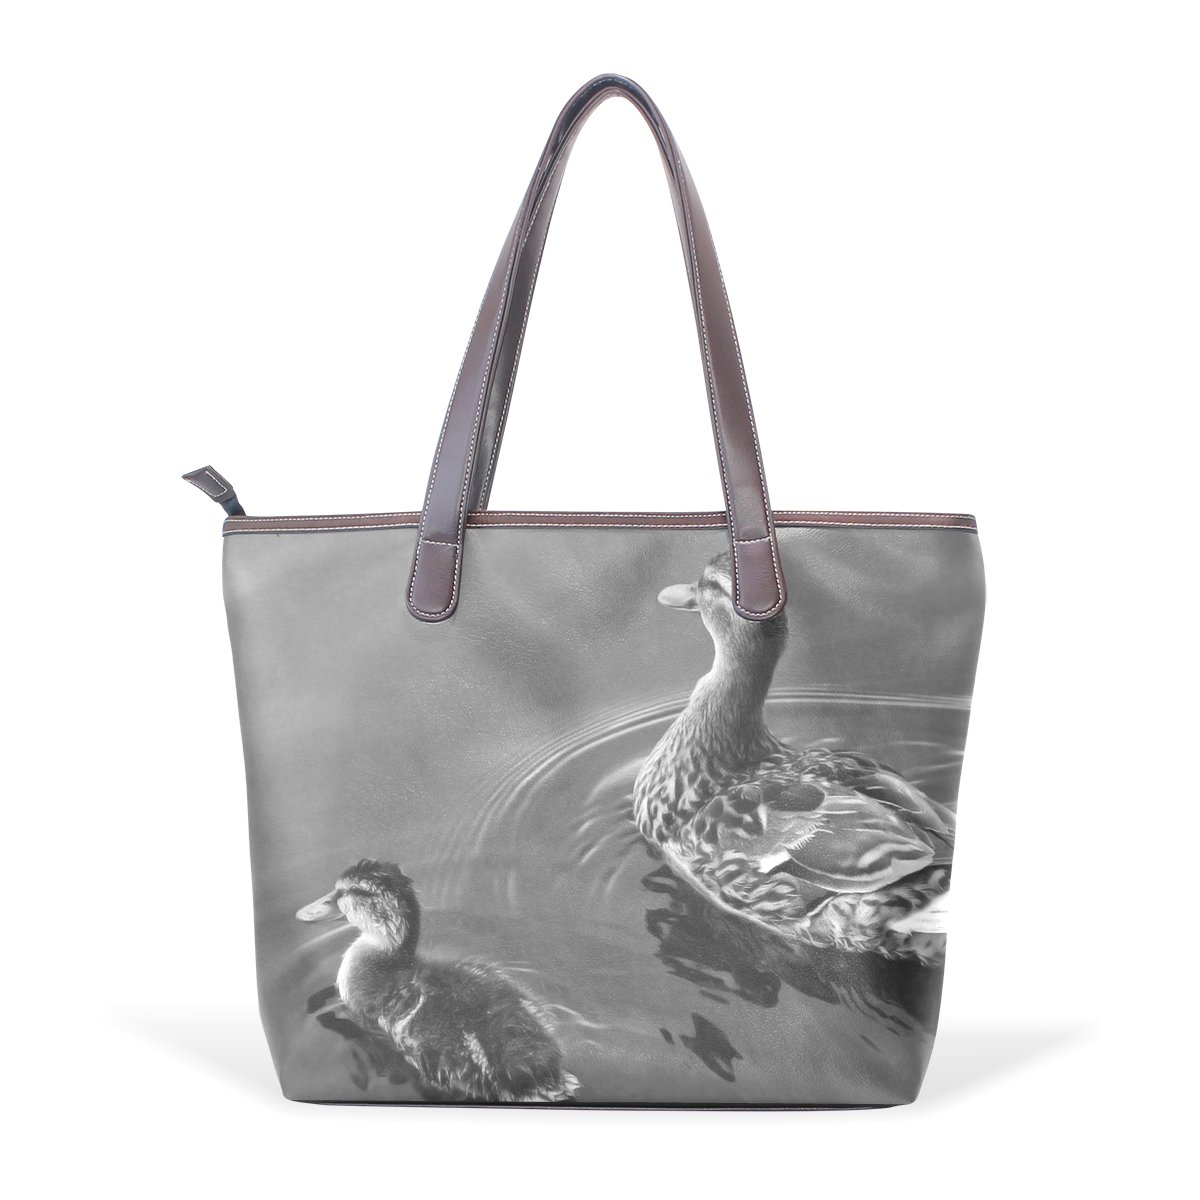 Mr.Weng Household Design And Color Is Water Duck Lady Handbag Tote Bag Zipper Shoulder Bag